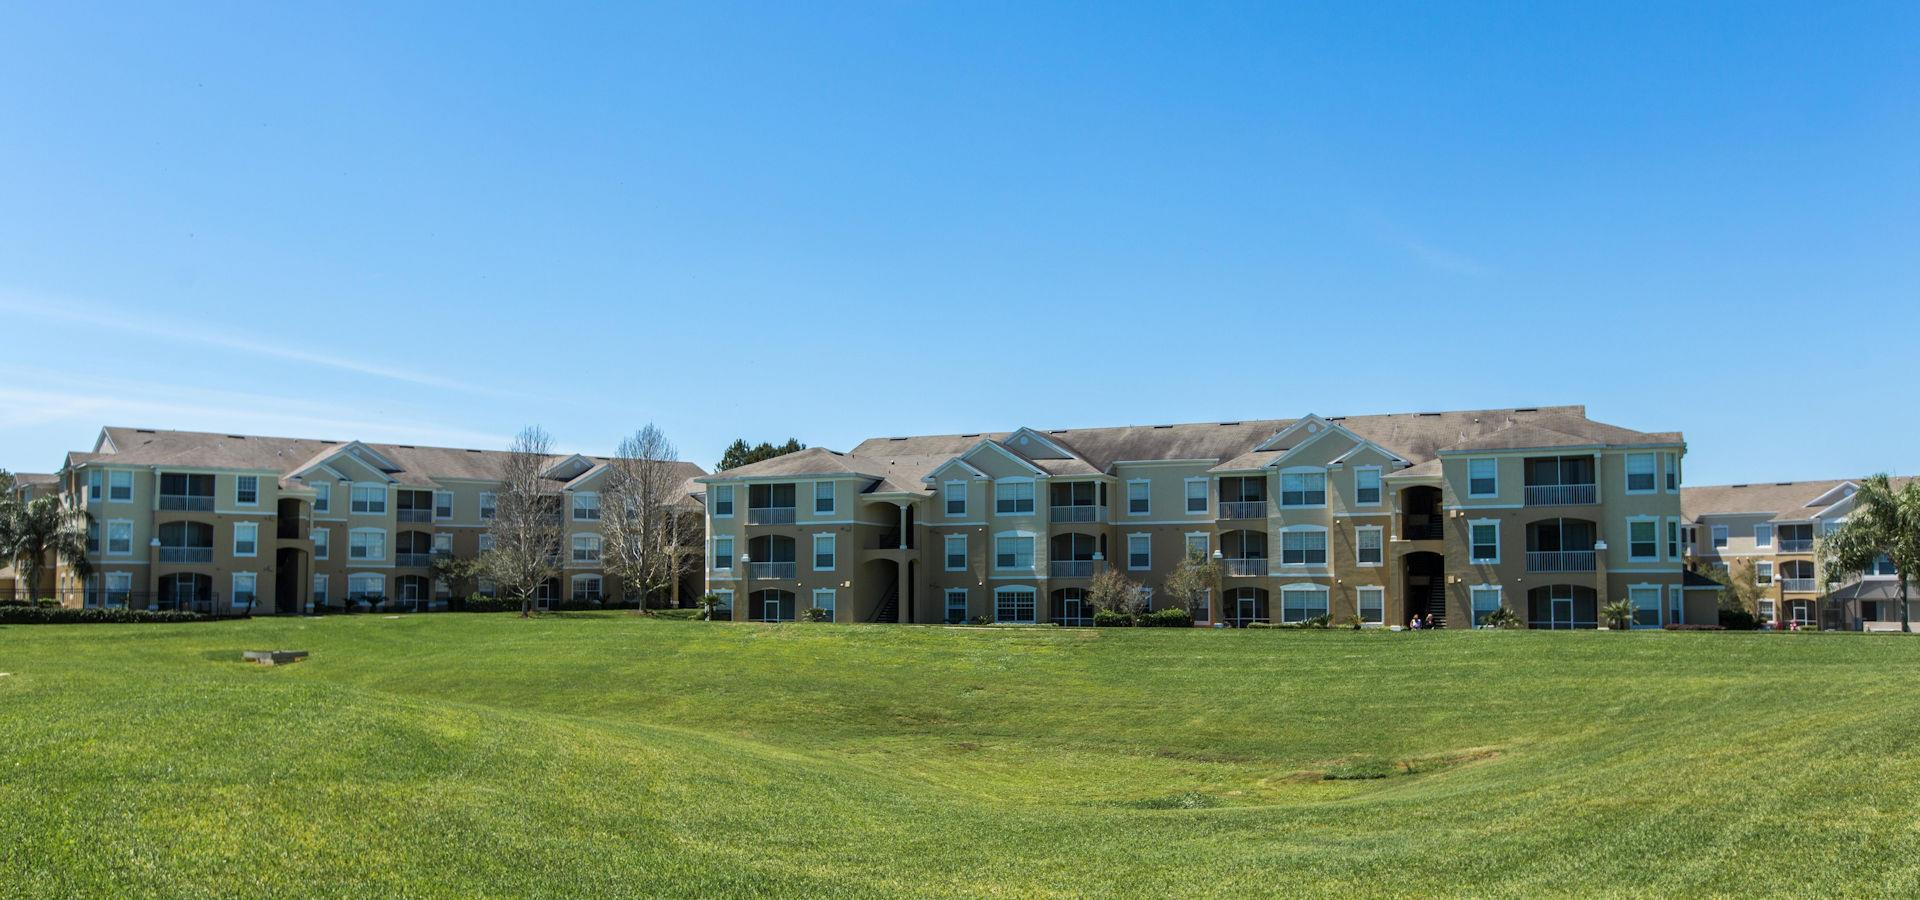 Two and three bedroom condos